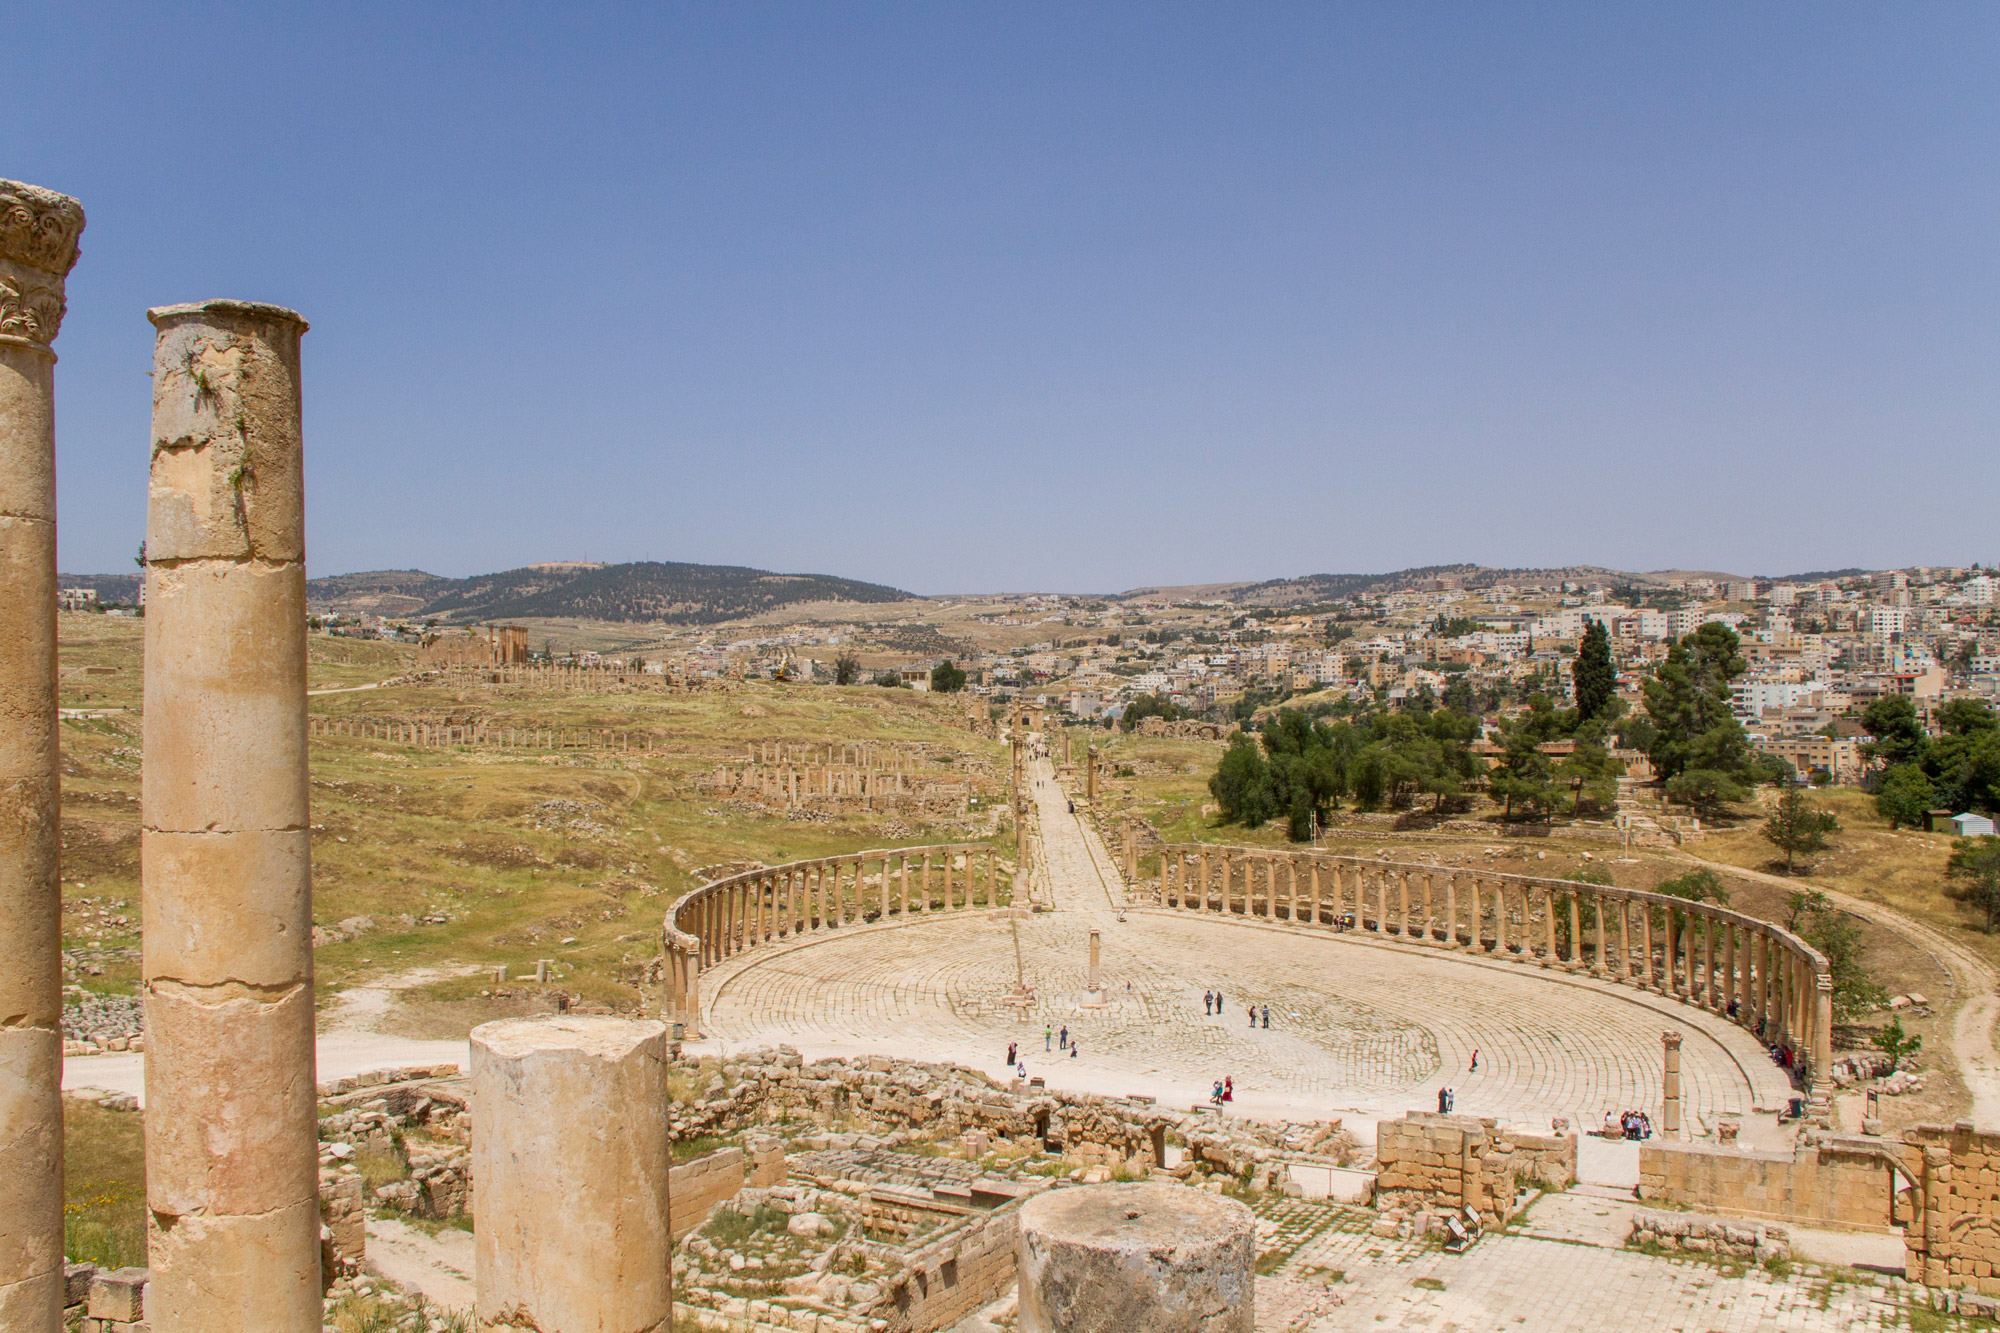 The Jerash ruins of Jordan are said to be the best-preserved Roman ruins outside of Italy. Jerash is in the north of Jordan, around 50km from the capital Amman.